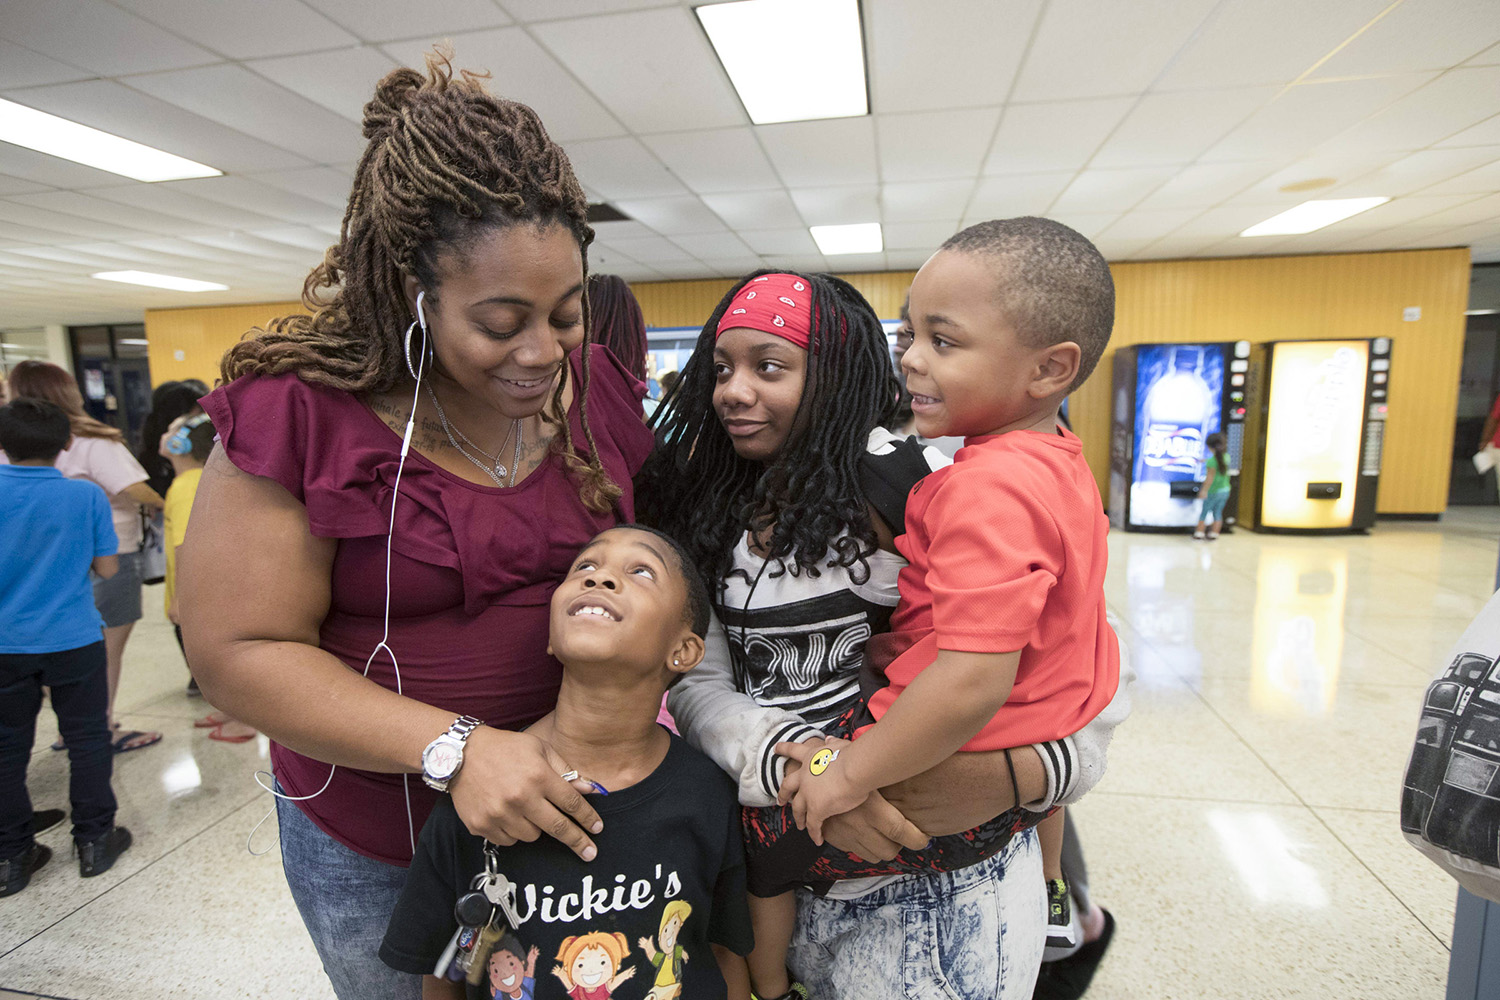 Opposed to Texas City ISD's relocation plan, Monique Lazard, at left, will re-enroll her 11-year-old daughter in a different school district.